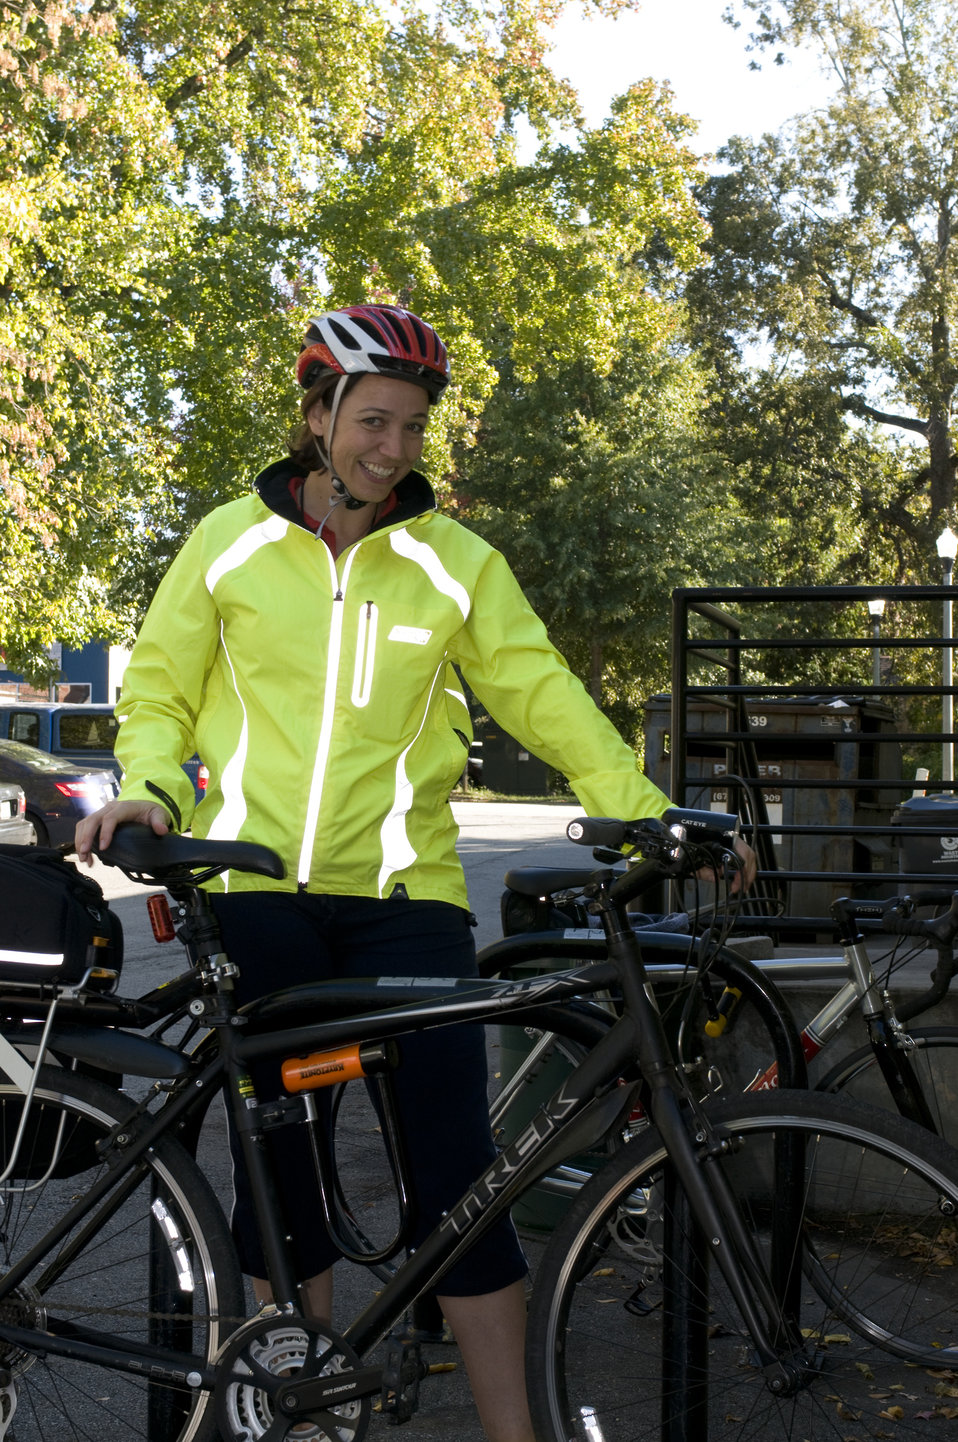 This photograph depicts a smiling female bicyclist, who was about to embark on a bicycle ride. Note the brightly-colored windbreaker she was